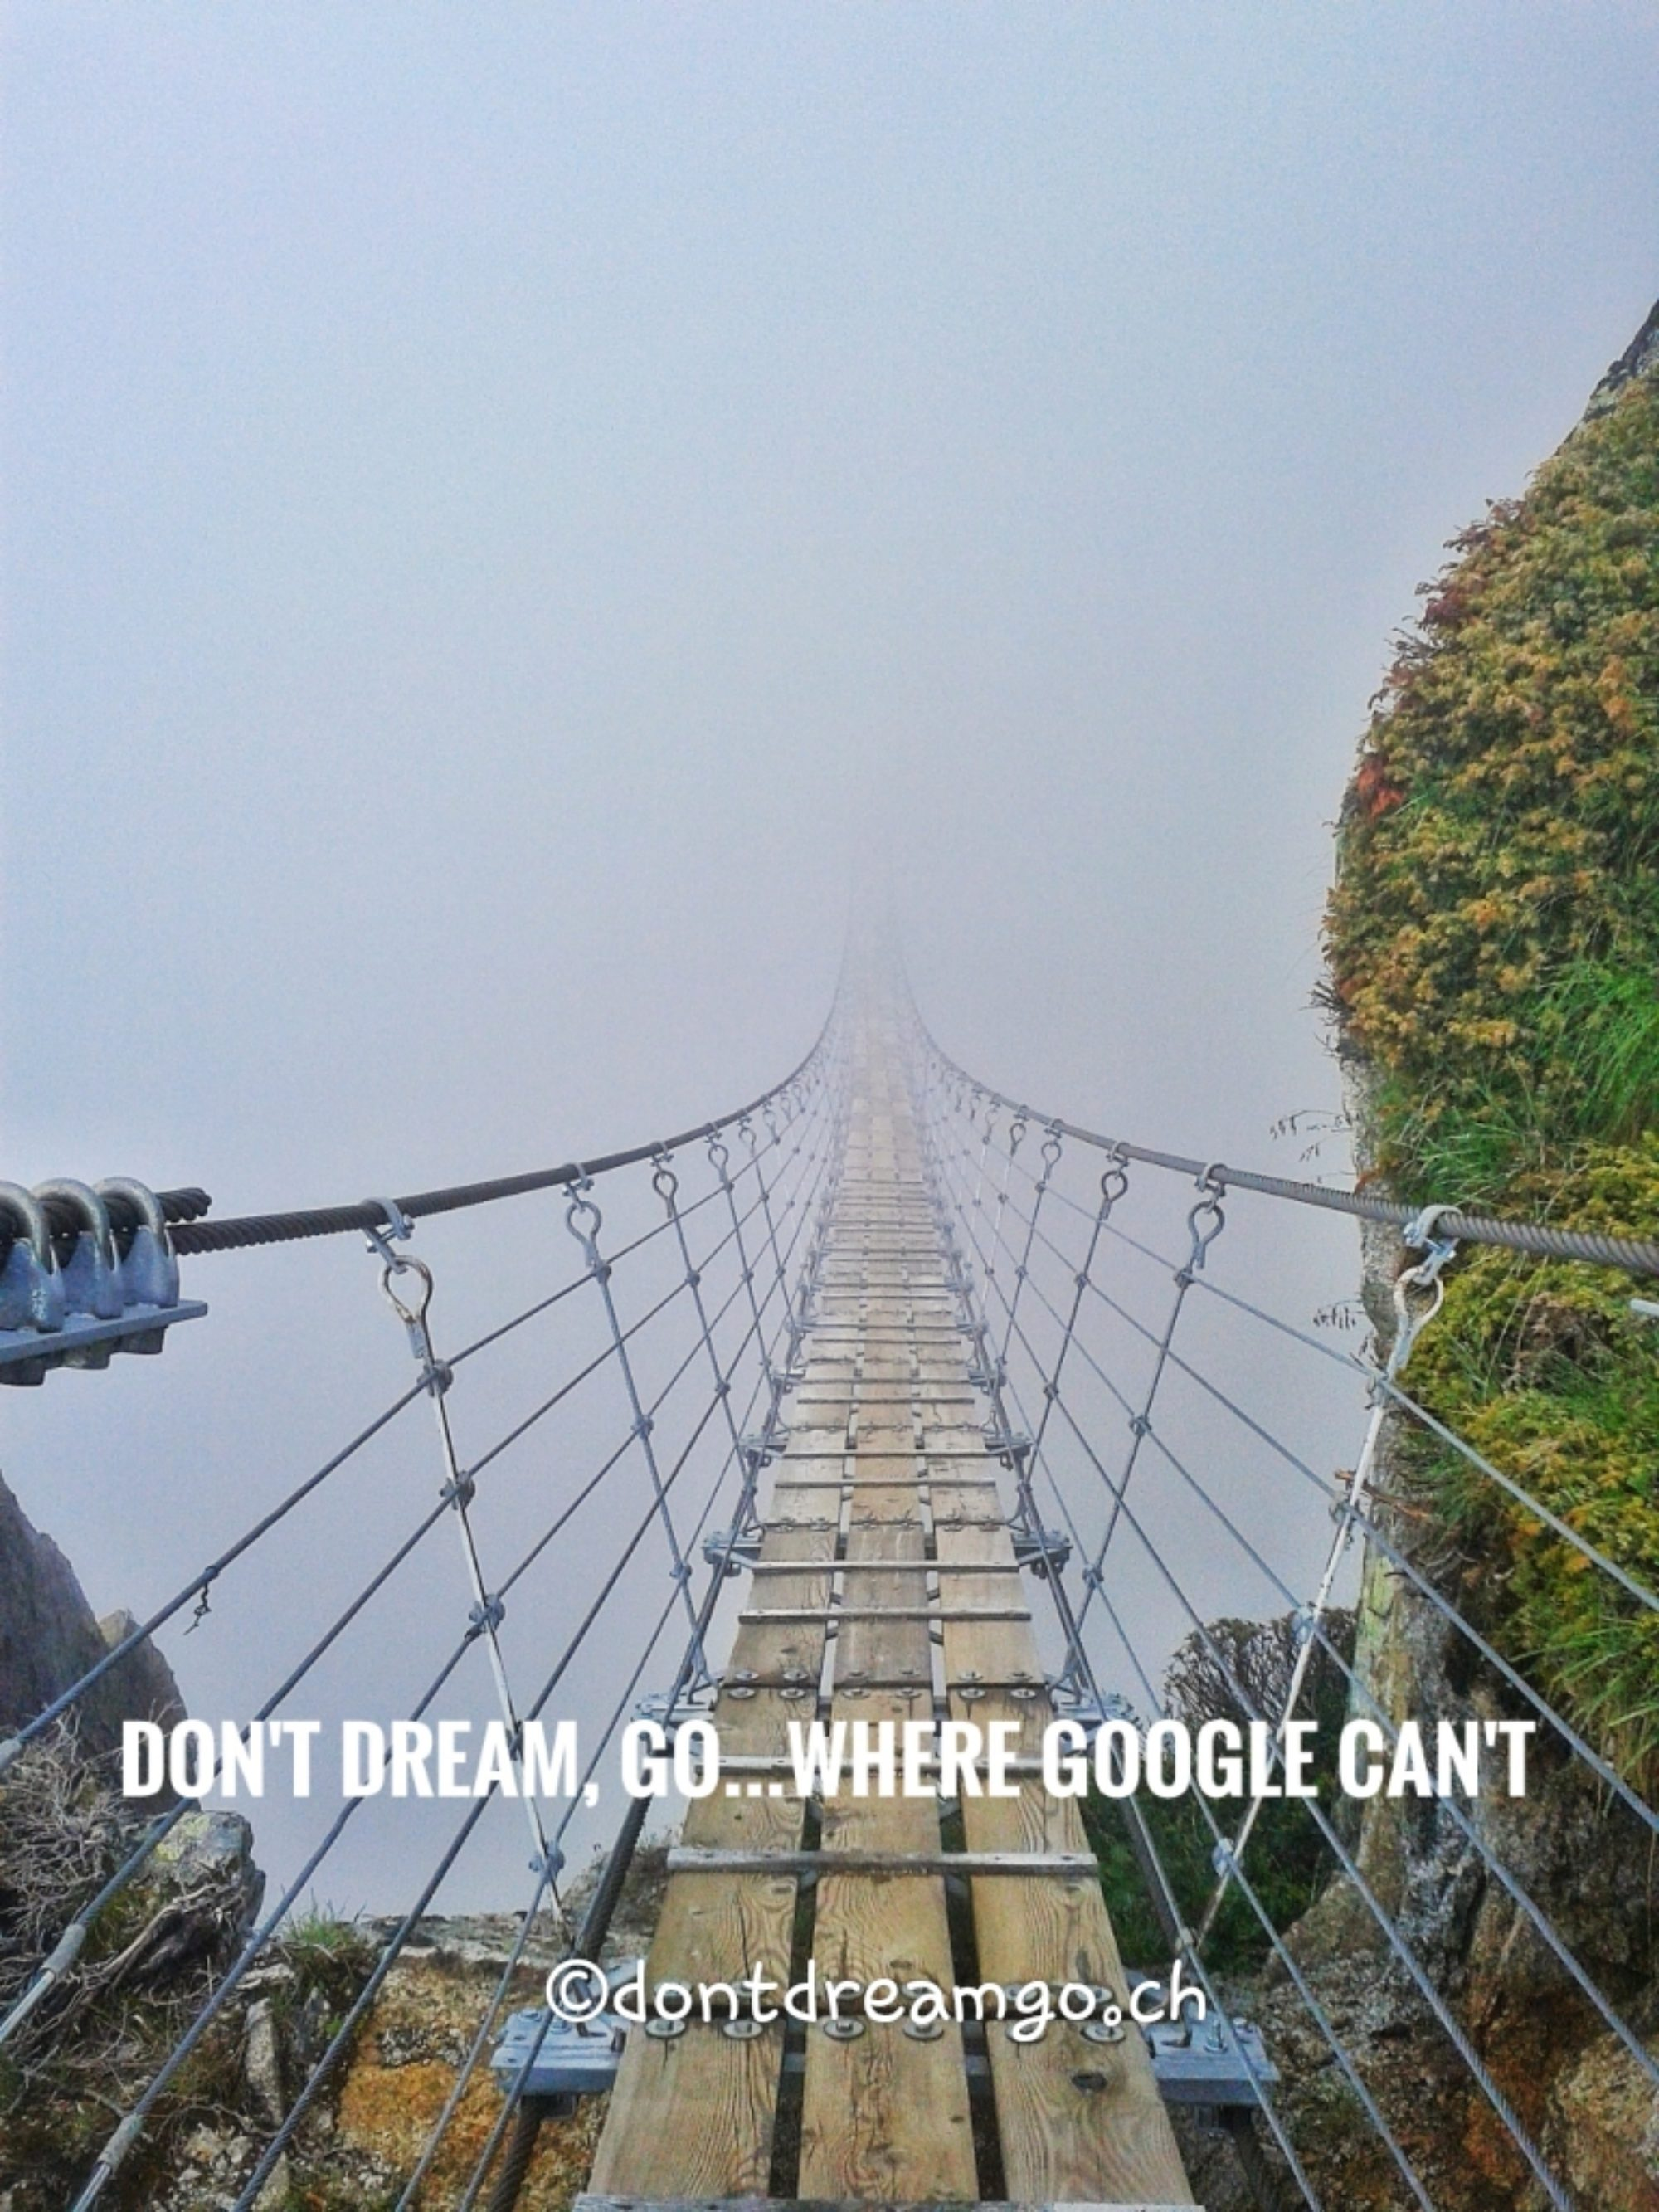 Don't dream - go